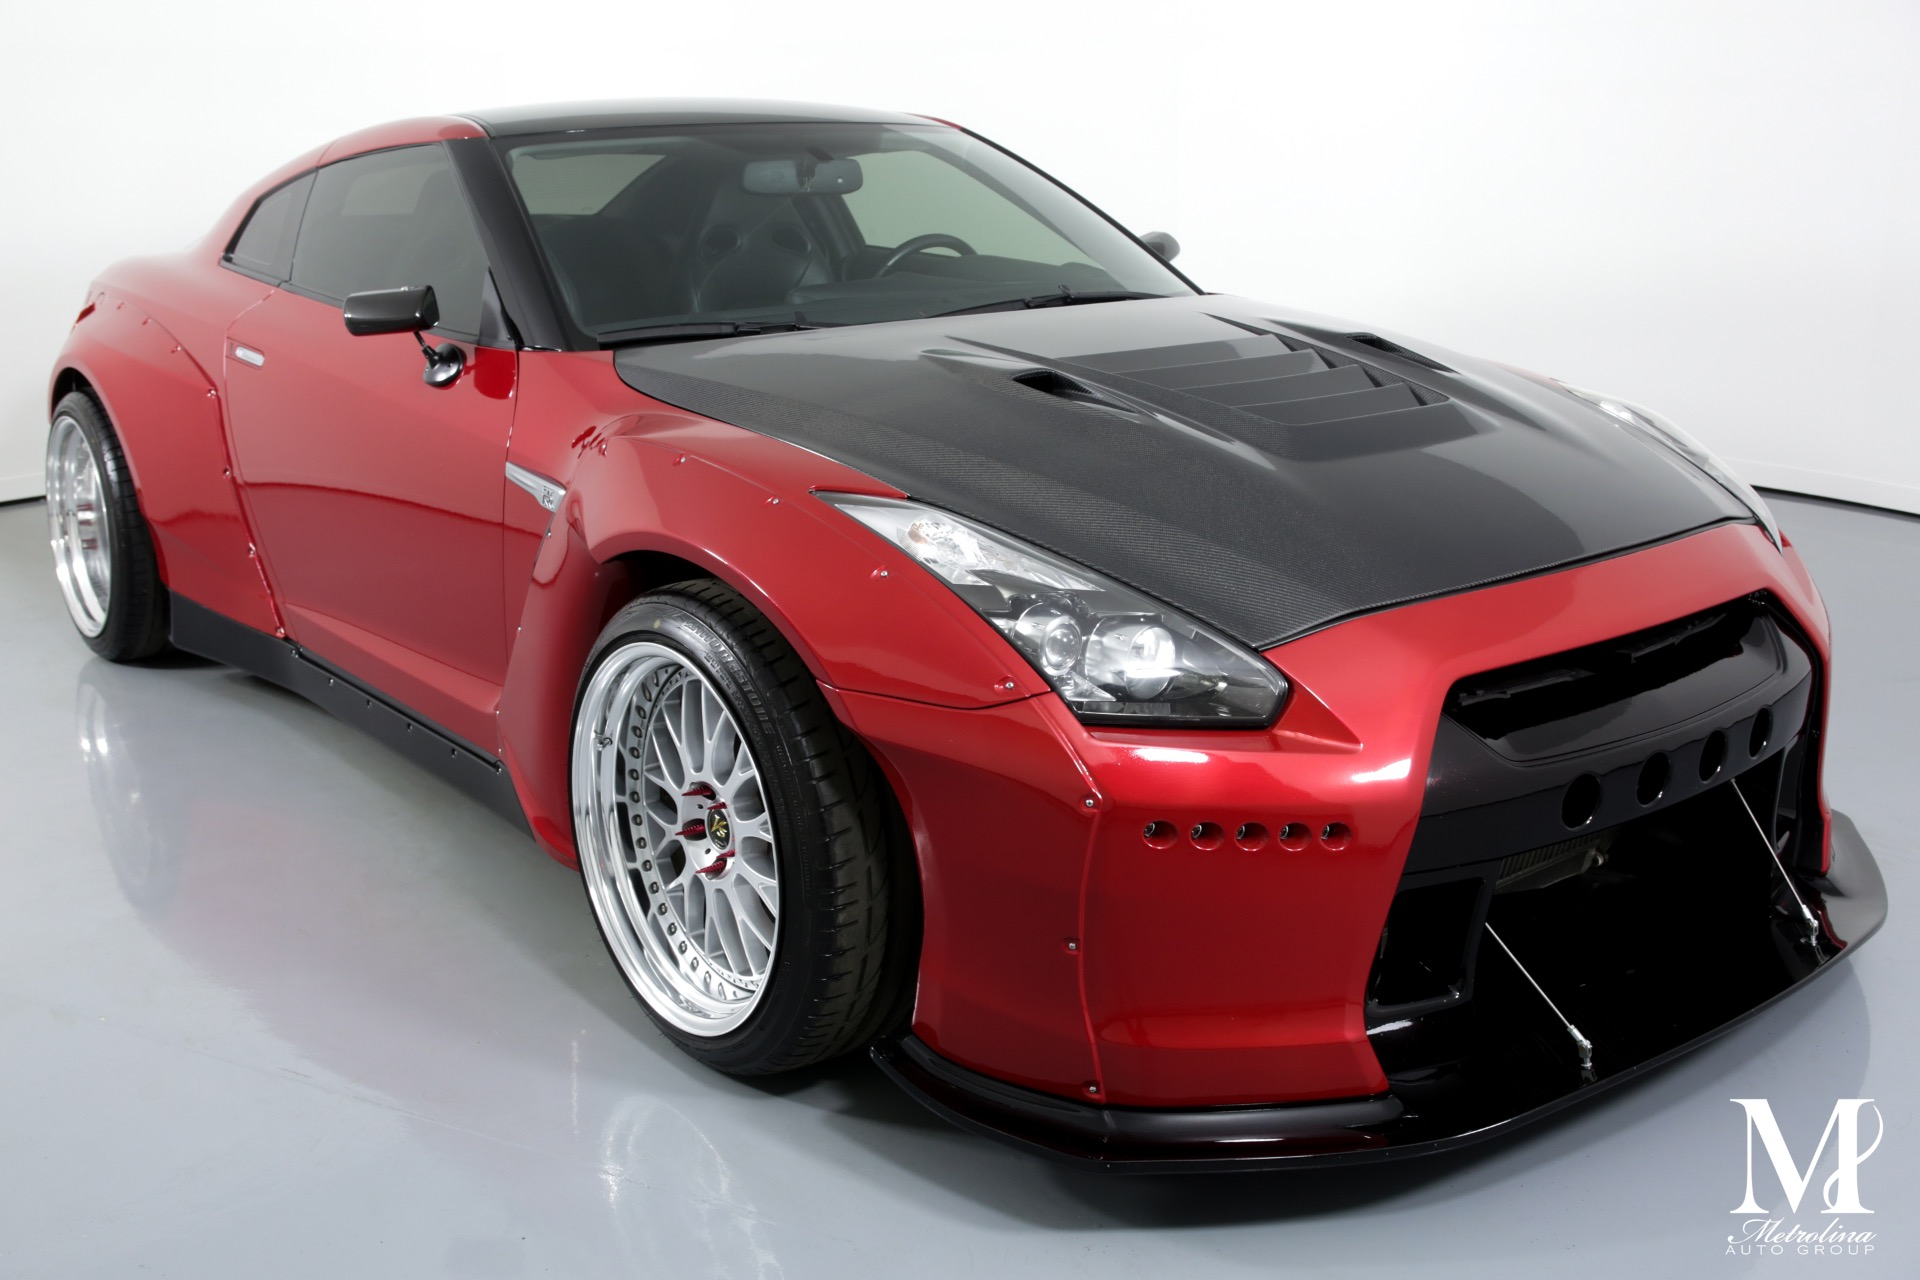 Used 2009 Nissan GT-R Premium for sale $84,996 at Metrolina Auto Group in Charlotte NC 28217 - 2